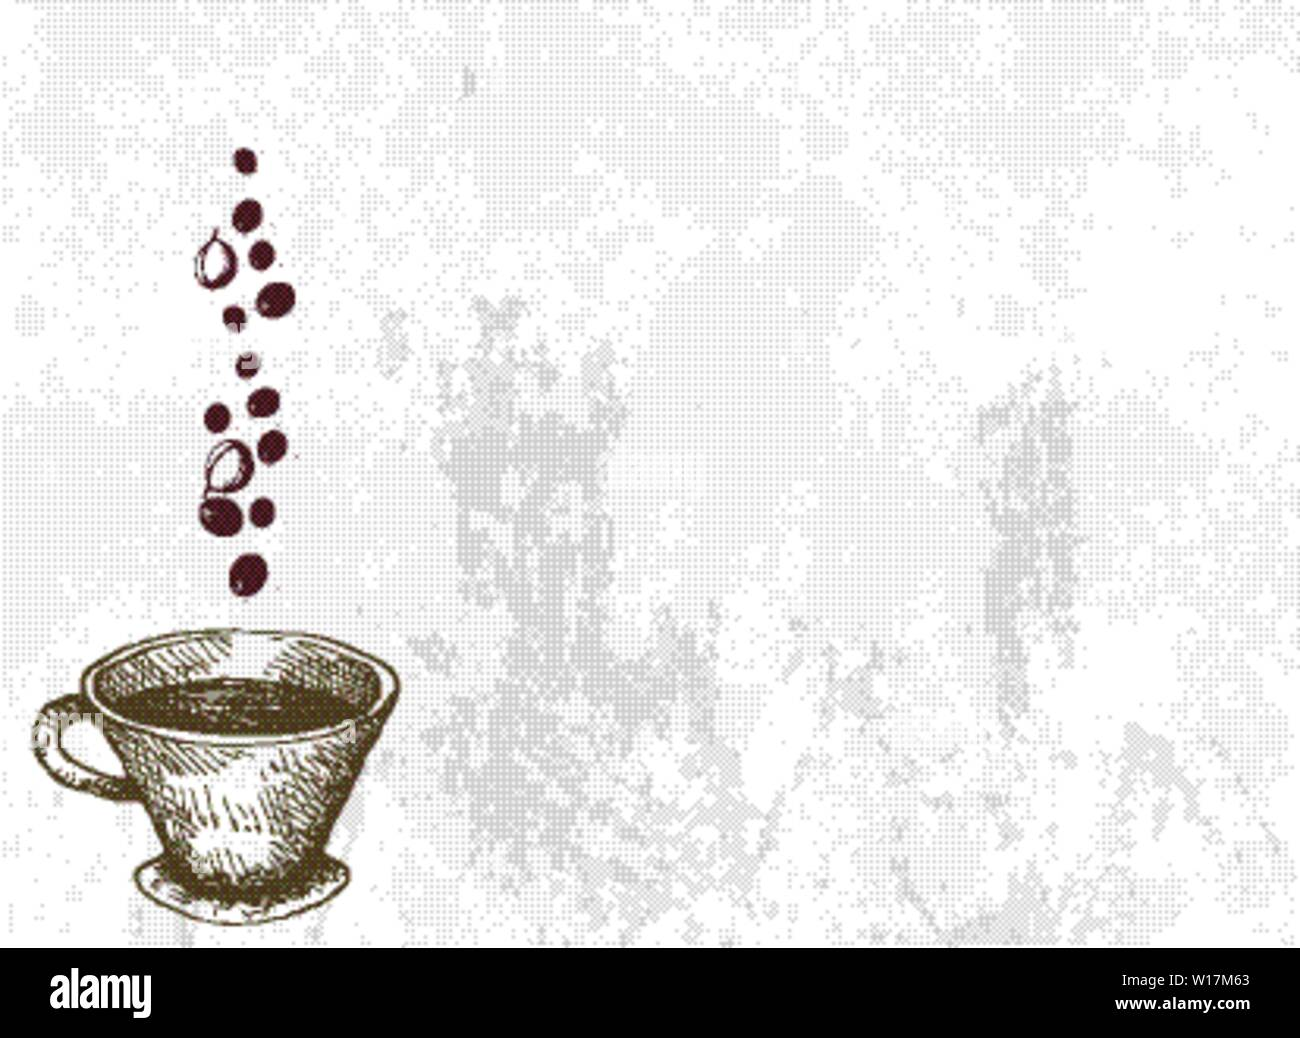 Illustration Hand Drawn Sketch of A Cup of Coffee with Roasted Coffee Beans. Stock Vector